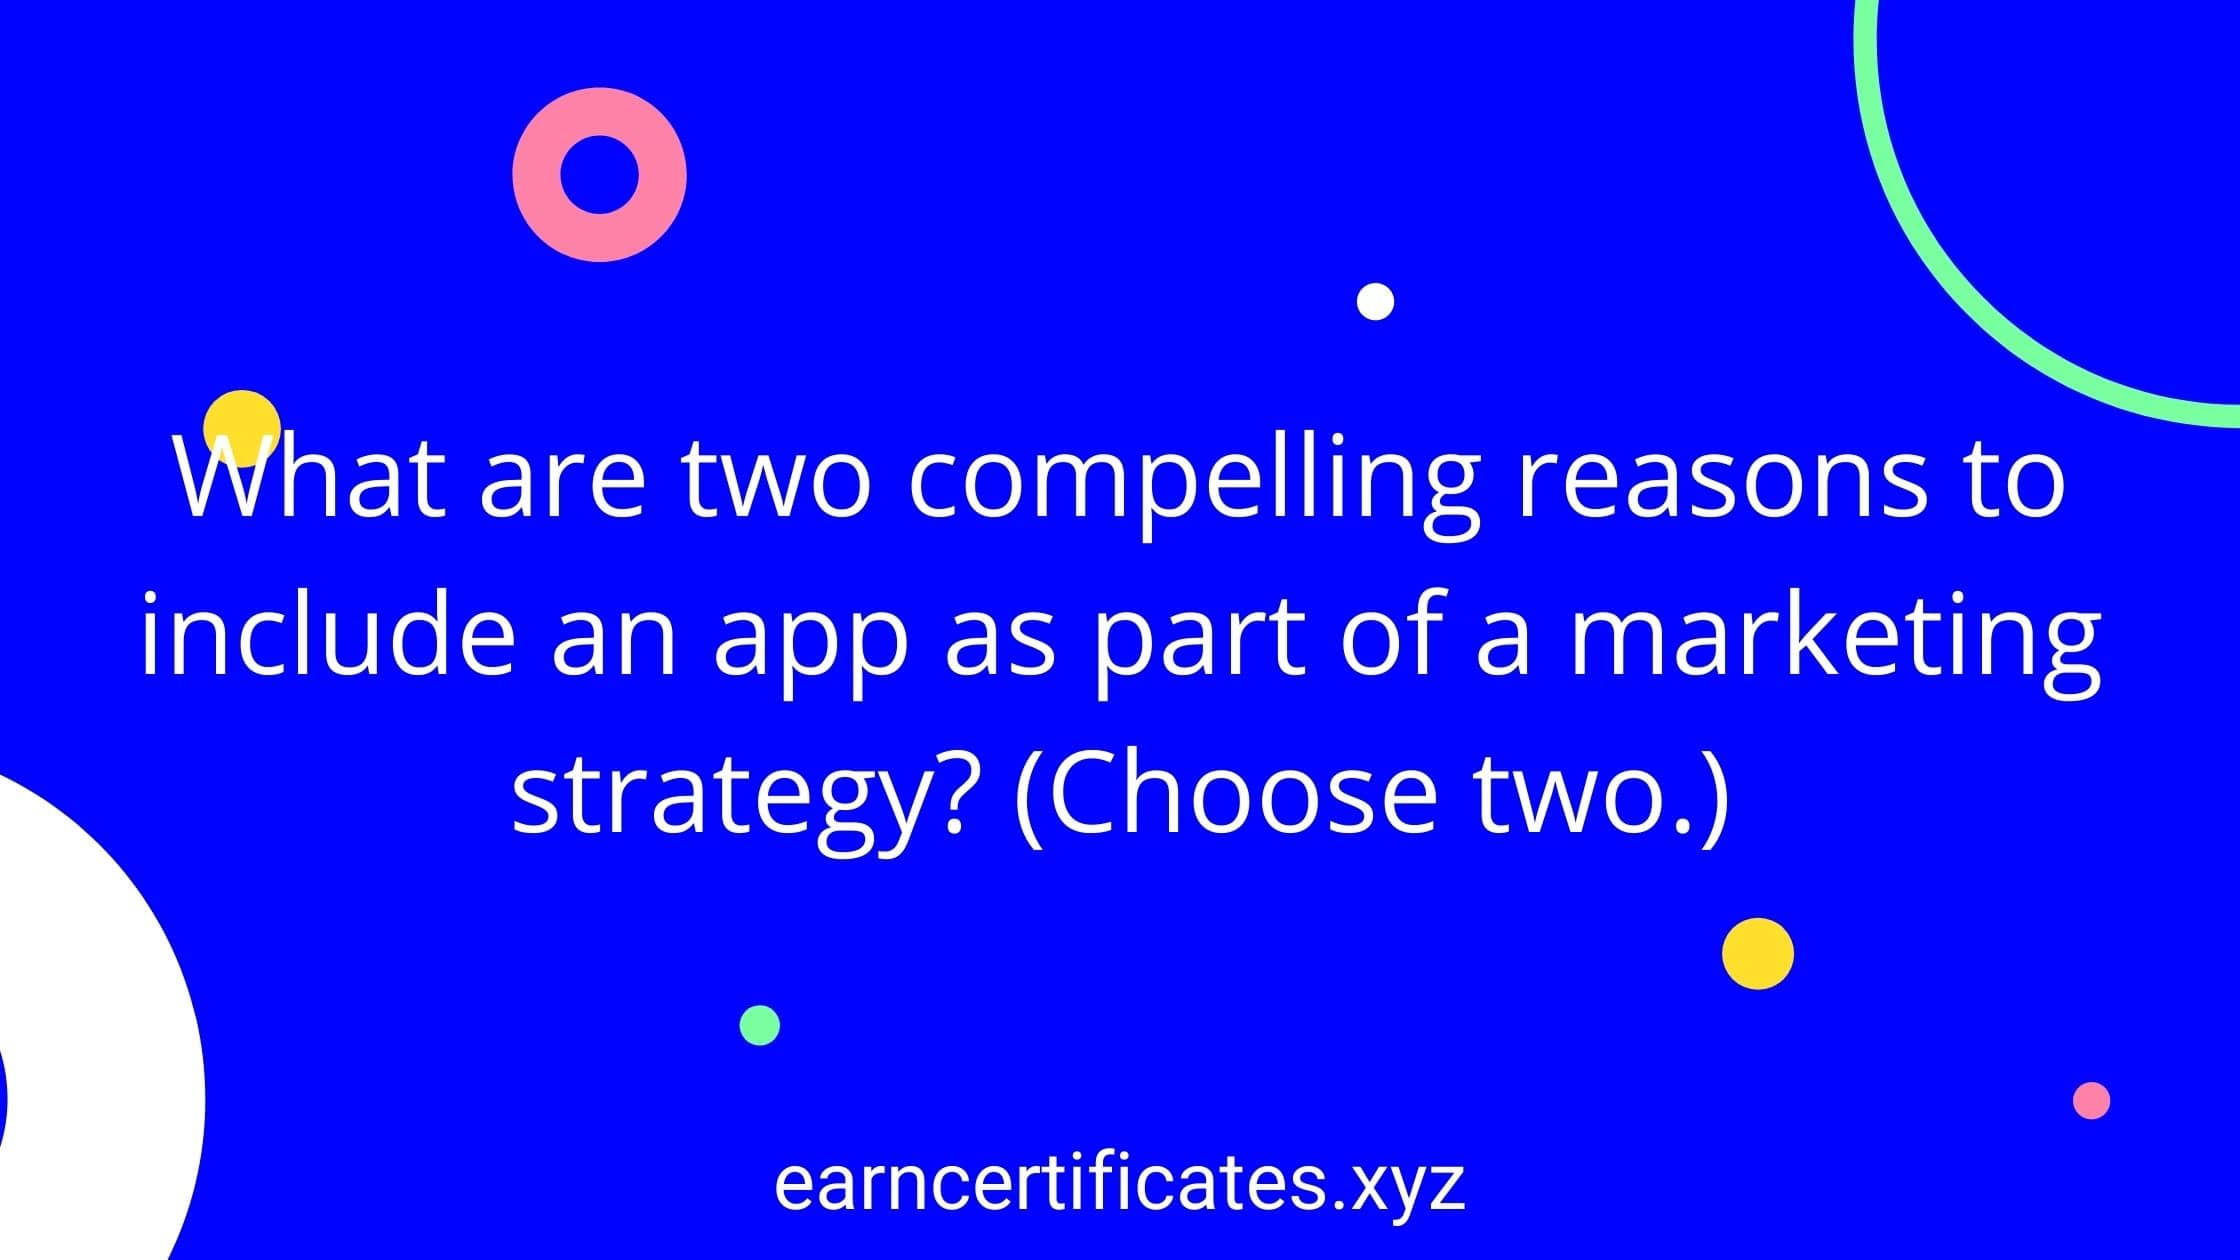 What are two compelling reasons to include an app as part of a marketing strategy? (Choose two.)